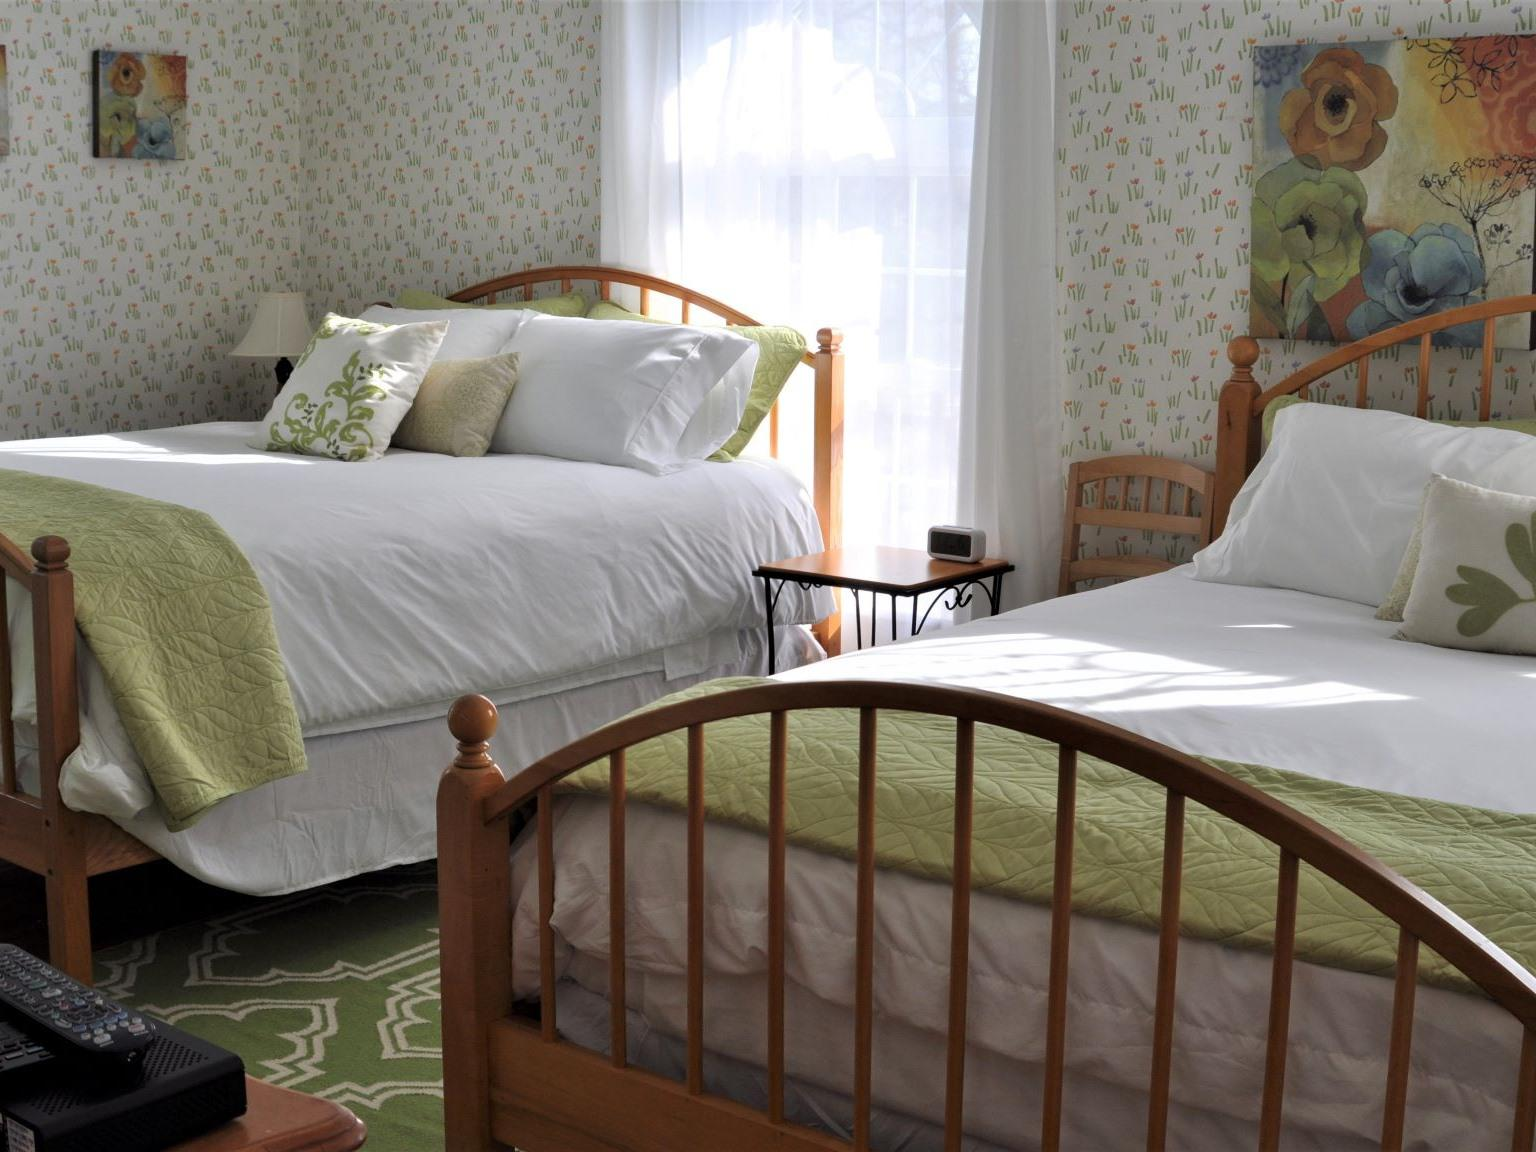 Quad room-Ensuite-Deluxe-Garden View-Room 3: Spring Room - Base Rate